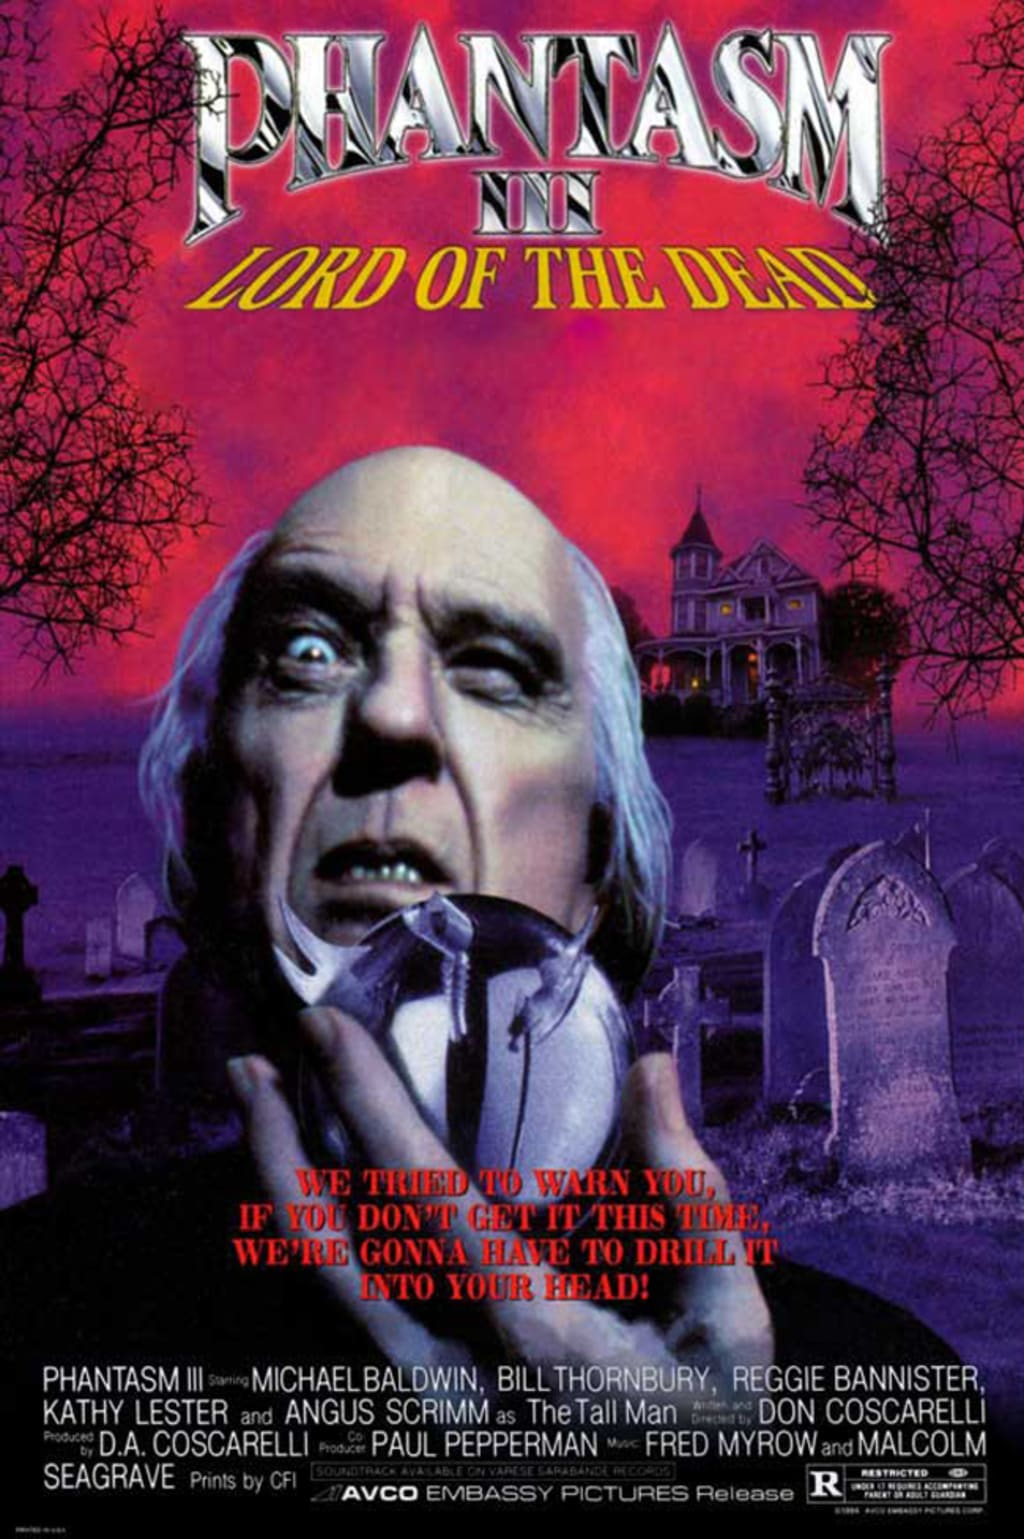 Reed Alexander's Horror Review of 'Phantasm III: Lord of the Dead' (1994)